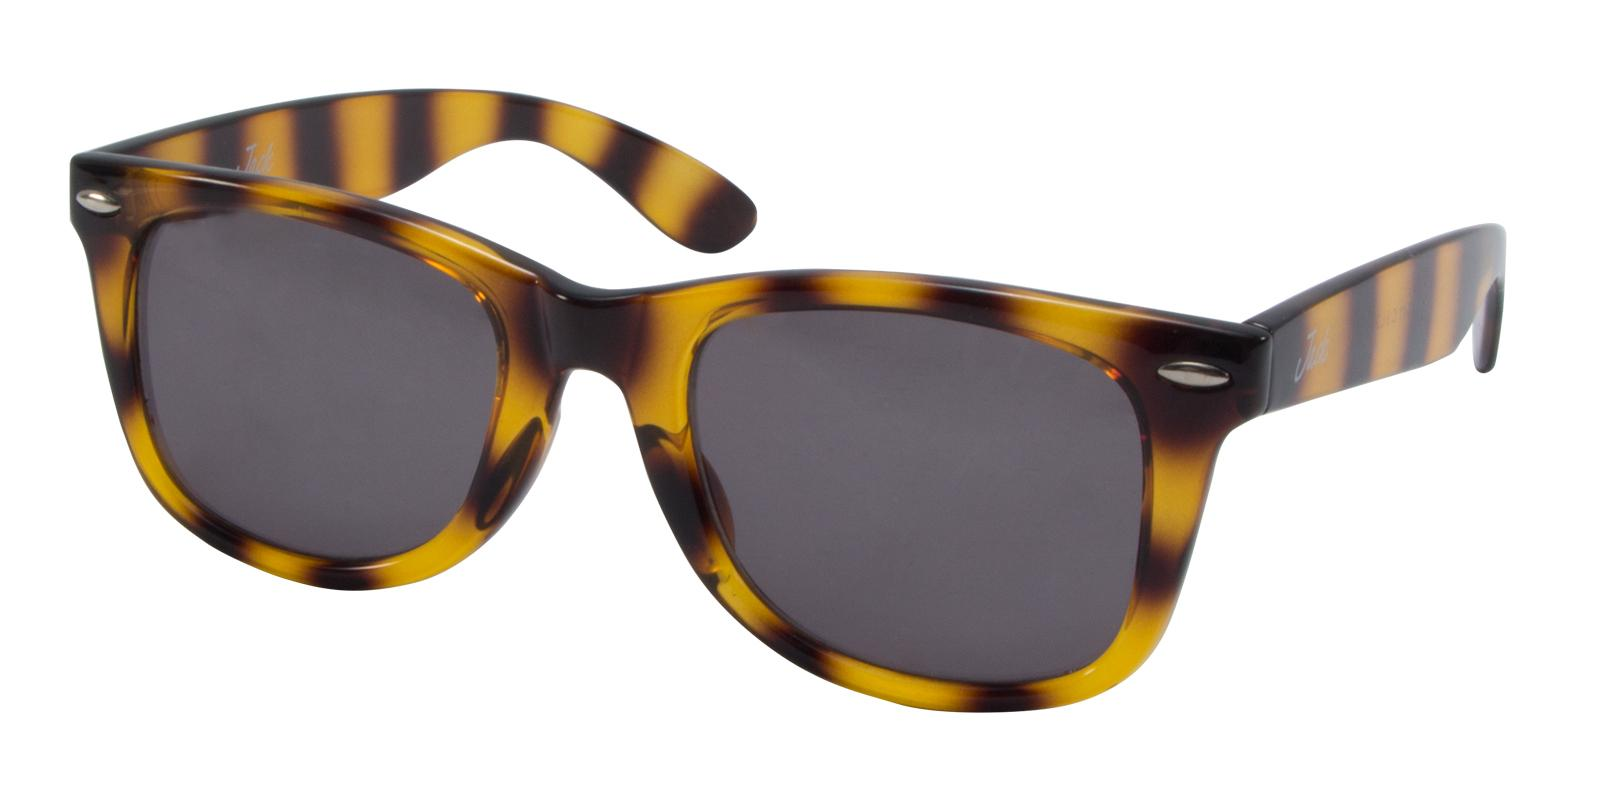 Hurra Tortoise TR Sunglasses , UniversalBridgeFit Frames from ABBE Glasses